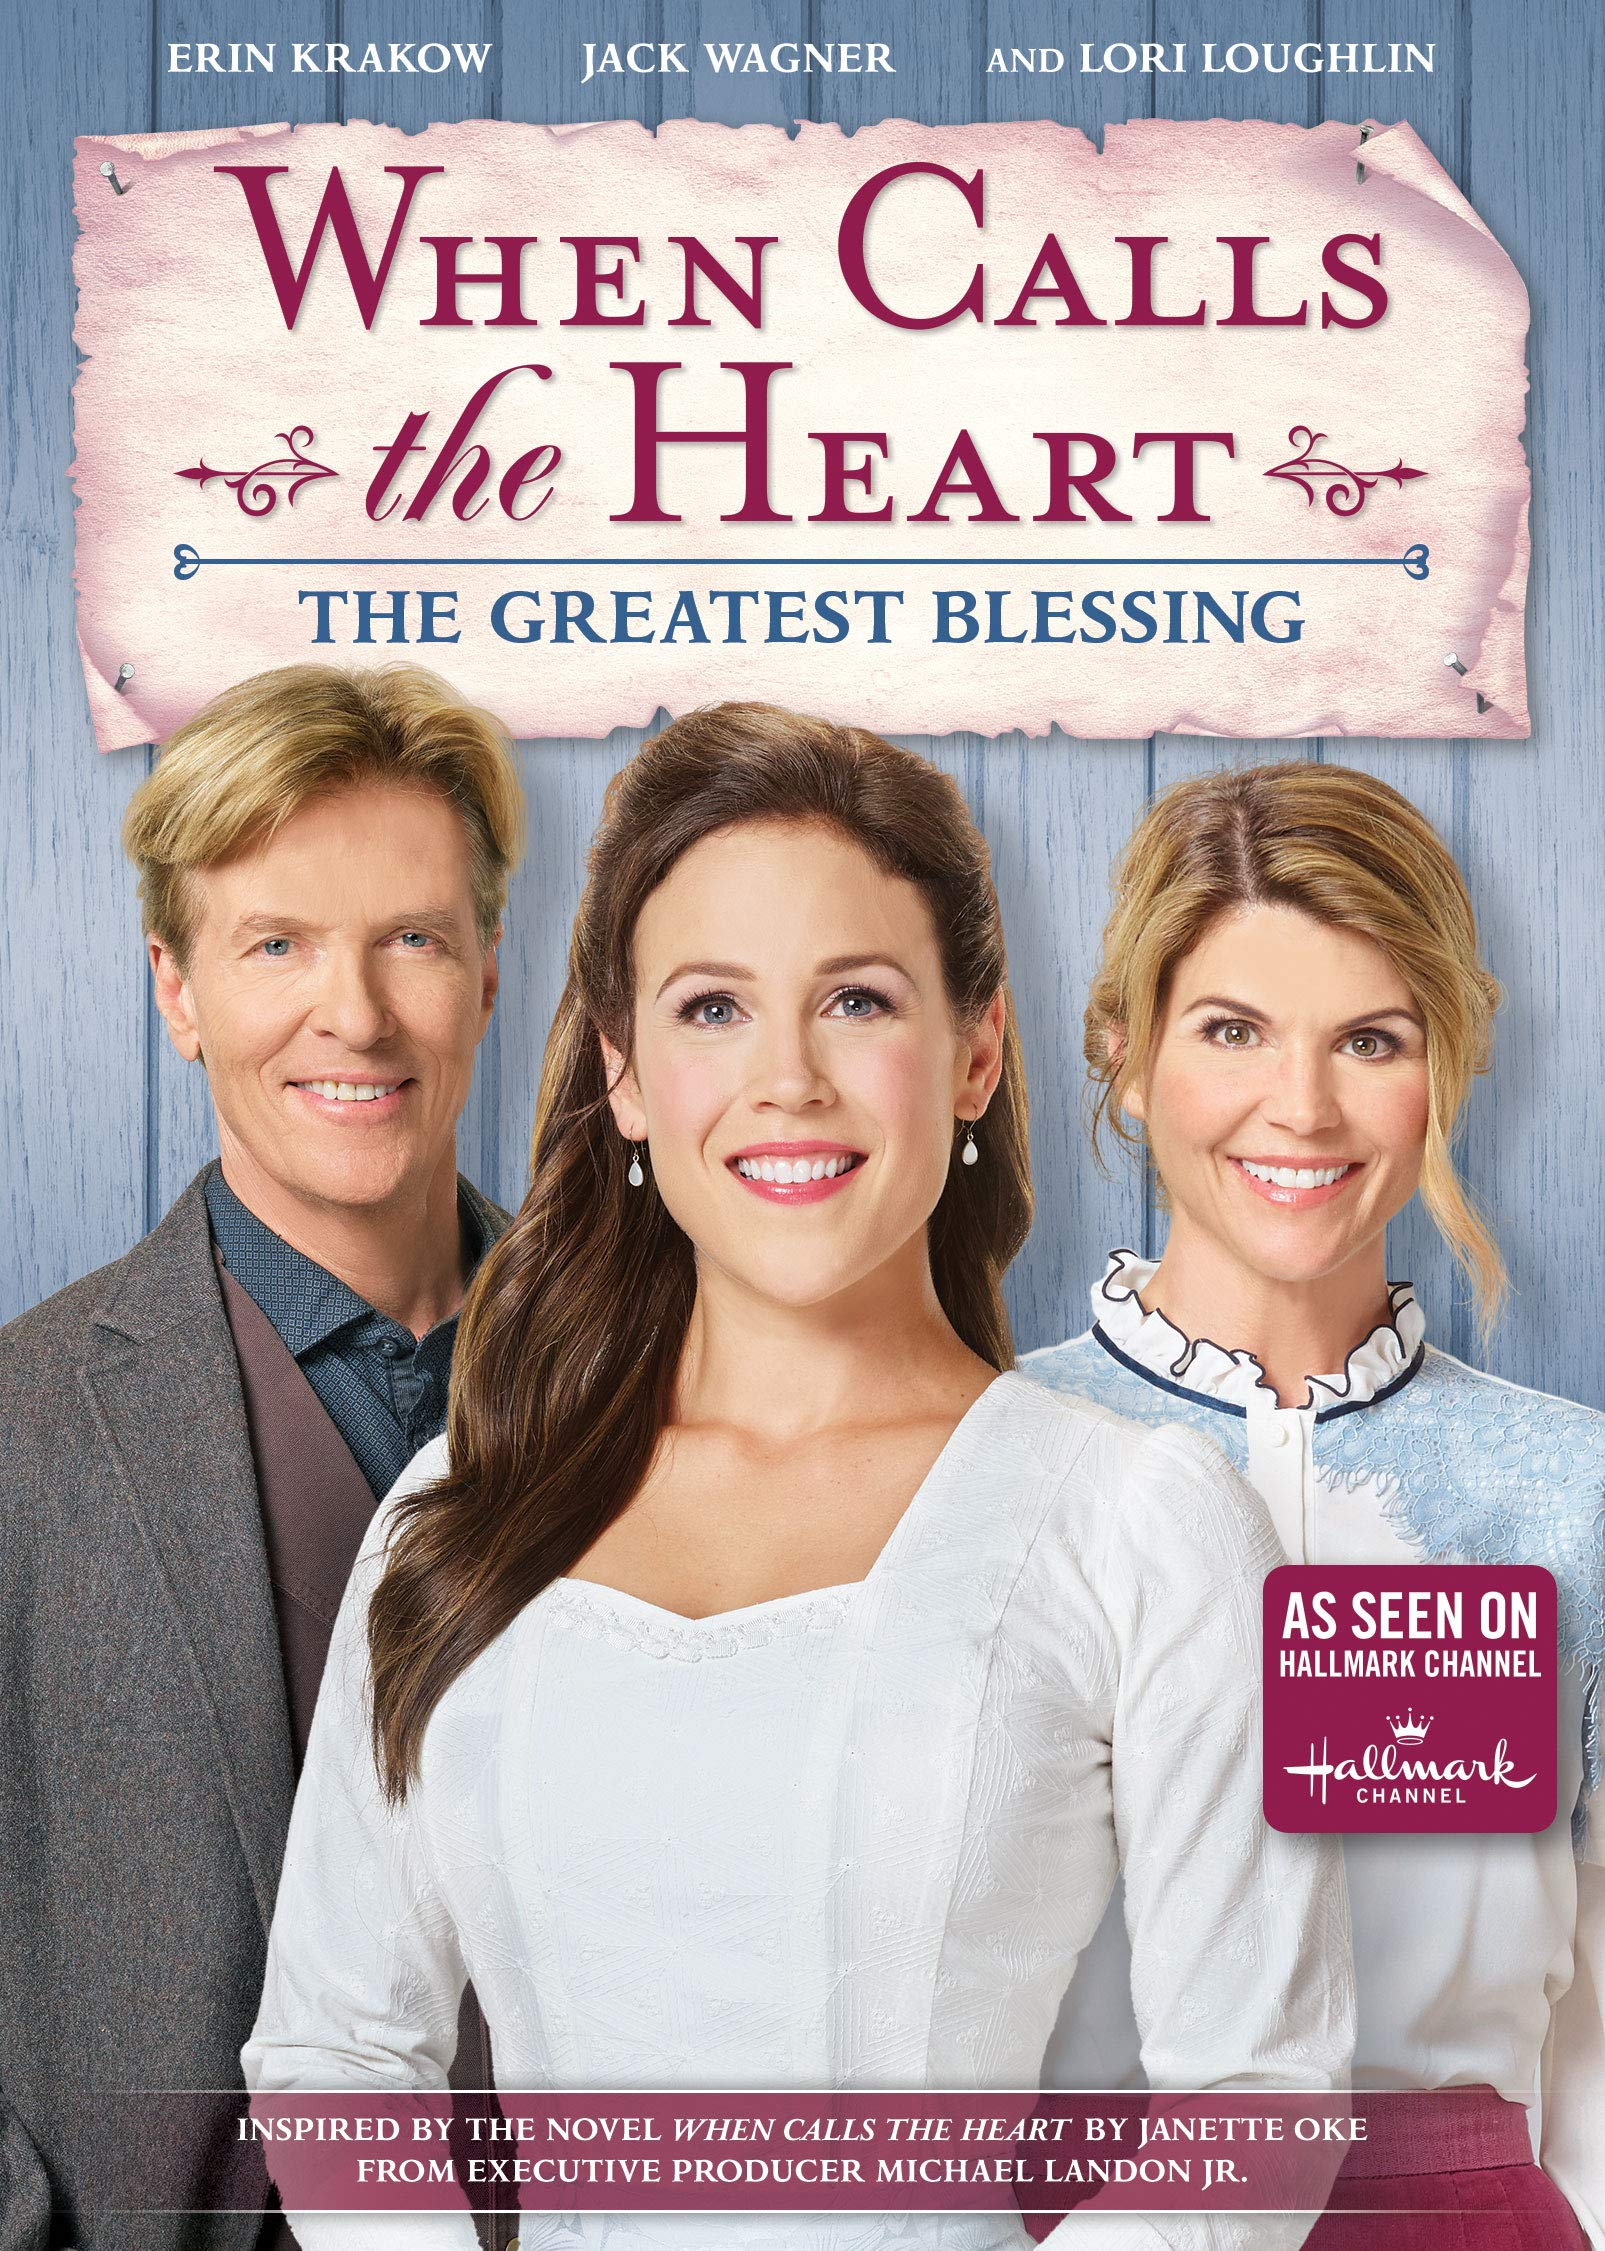 When Calls The Heart Christmas Special 2019.Details About Amazing Gift When Calls The Heart The Greatest Blessing New Dvd 2019